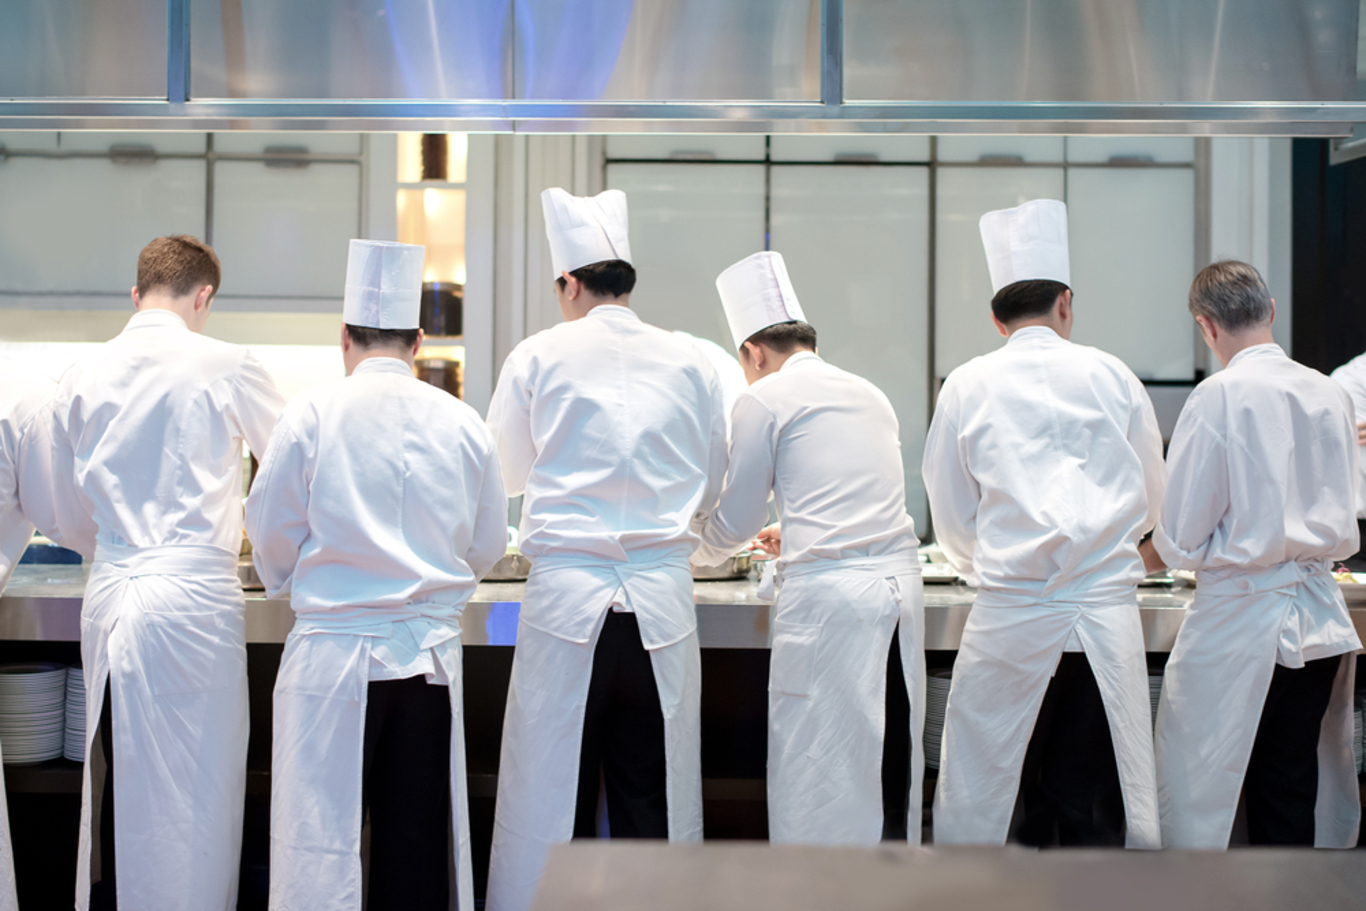 Chefs' pay is increasing - but it's still sub-par for junior